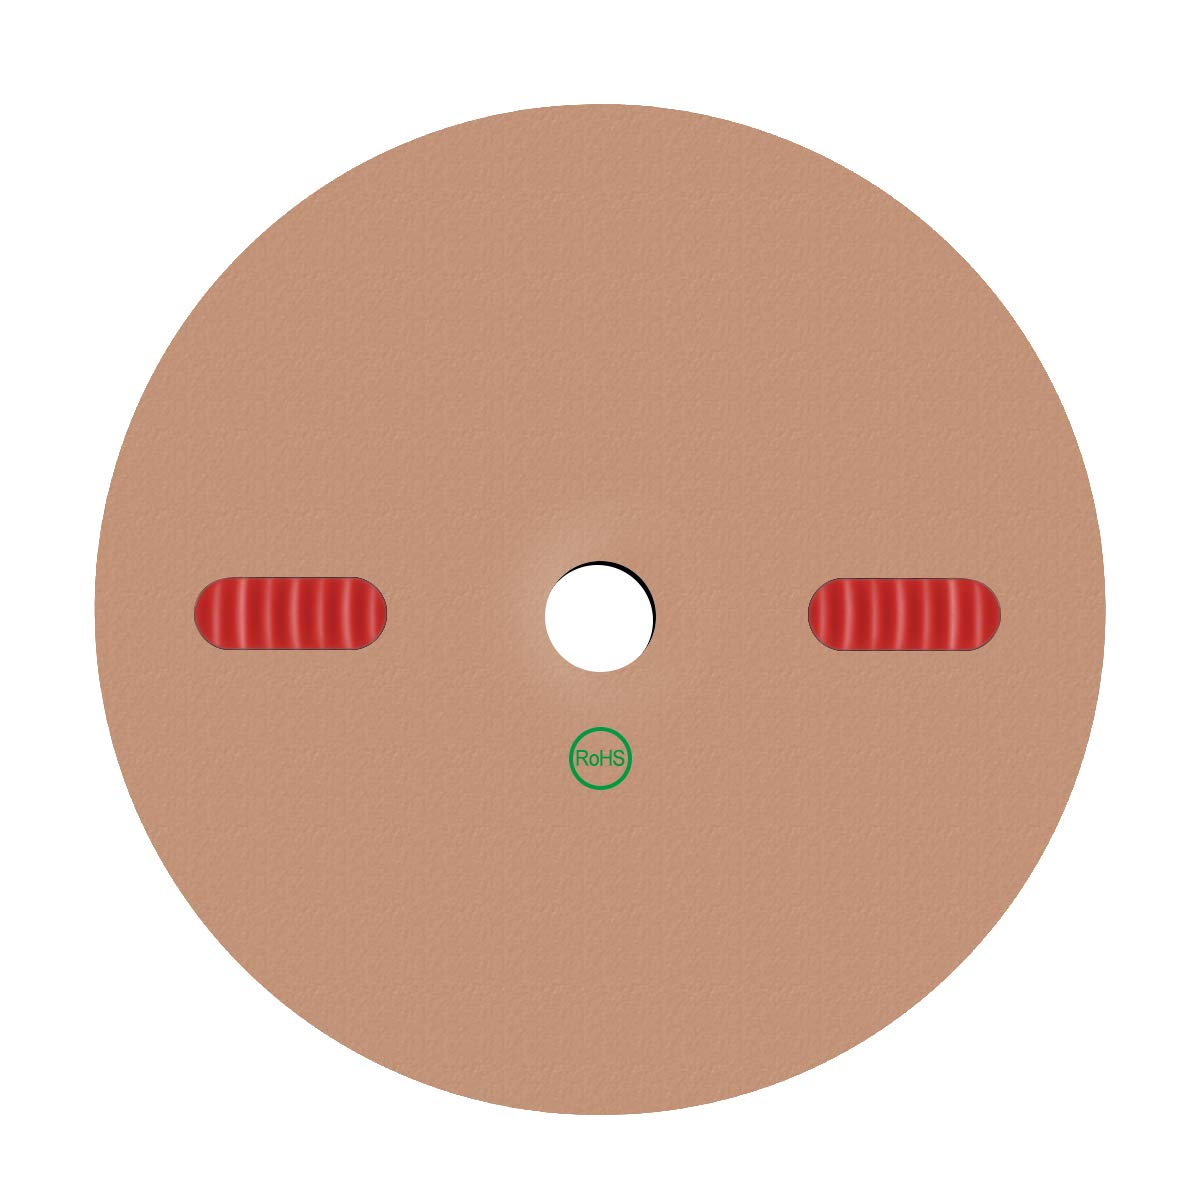 3/32 Inch(2.4mm) 82 Ft XHF 3:1 Waterproof Heat Shrink Tubing Roll Marine Grade Adhesive Lined Heat Shrink Tube, Insulation Sealing Oil-Proof Wear-Resistant Red